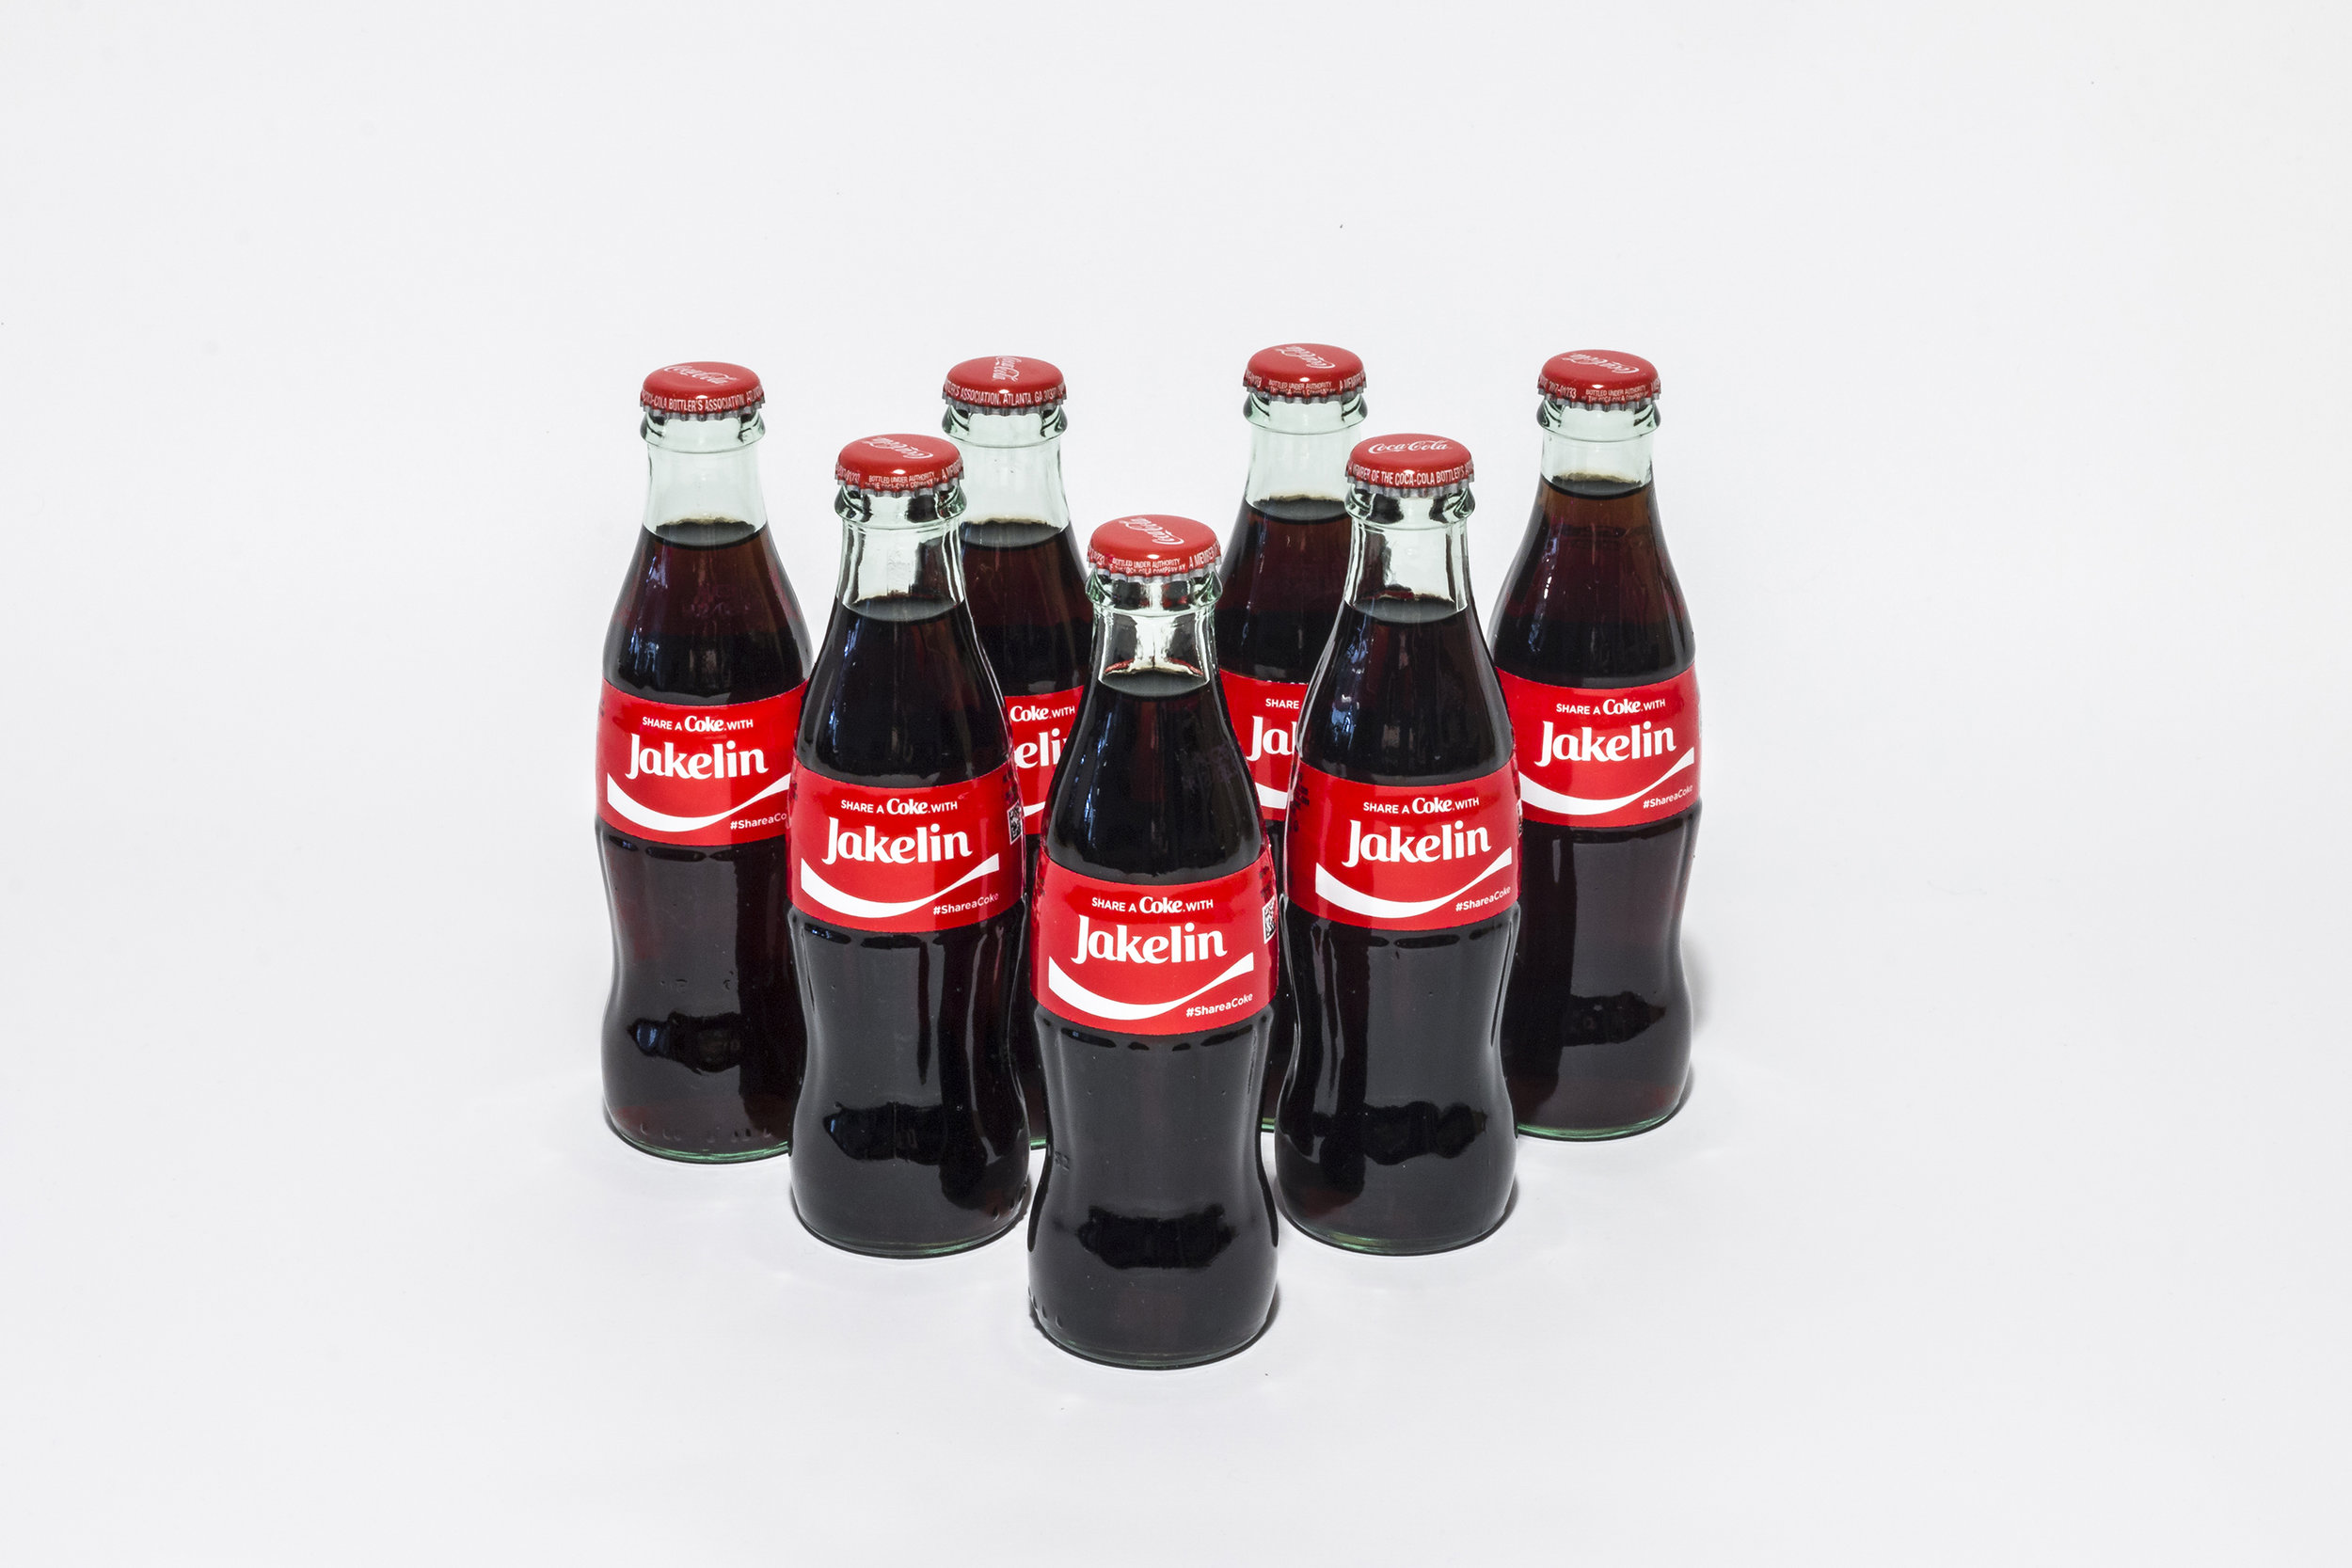 *This guerrilla stunt hasn't been organized by The Coca-Cola Company, and this isn't either part of their 'Share a Coke' initiative. However, the people behind this humanitarian action have used the Coke online platform to help immigrants families.